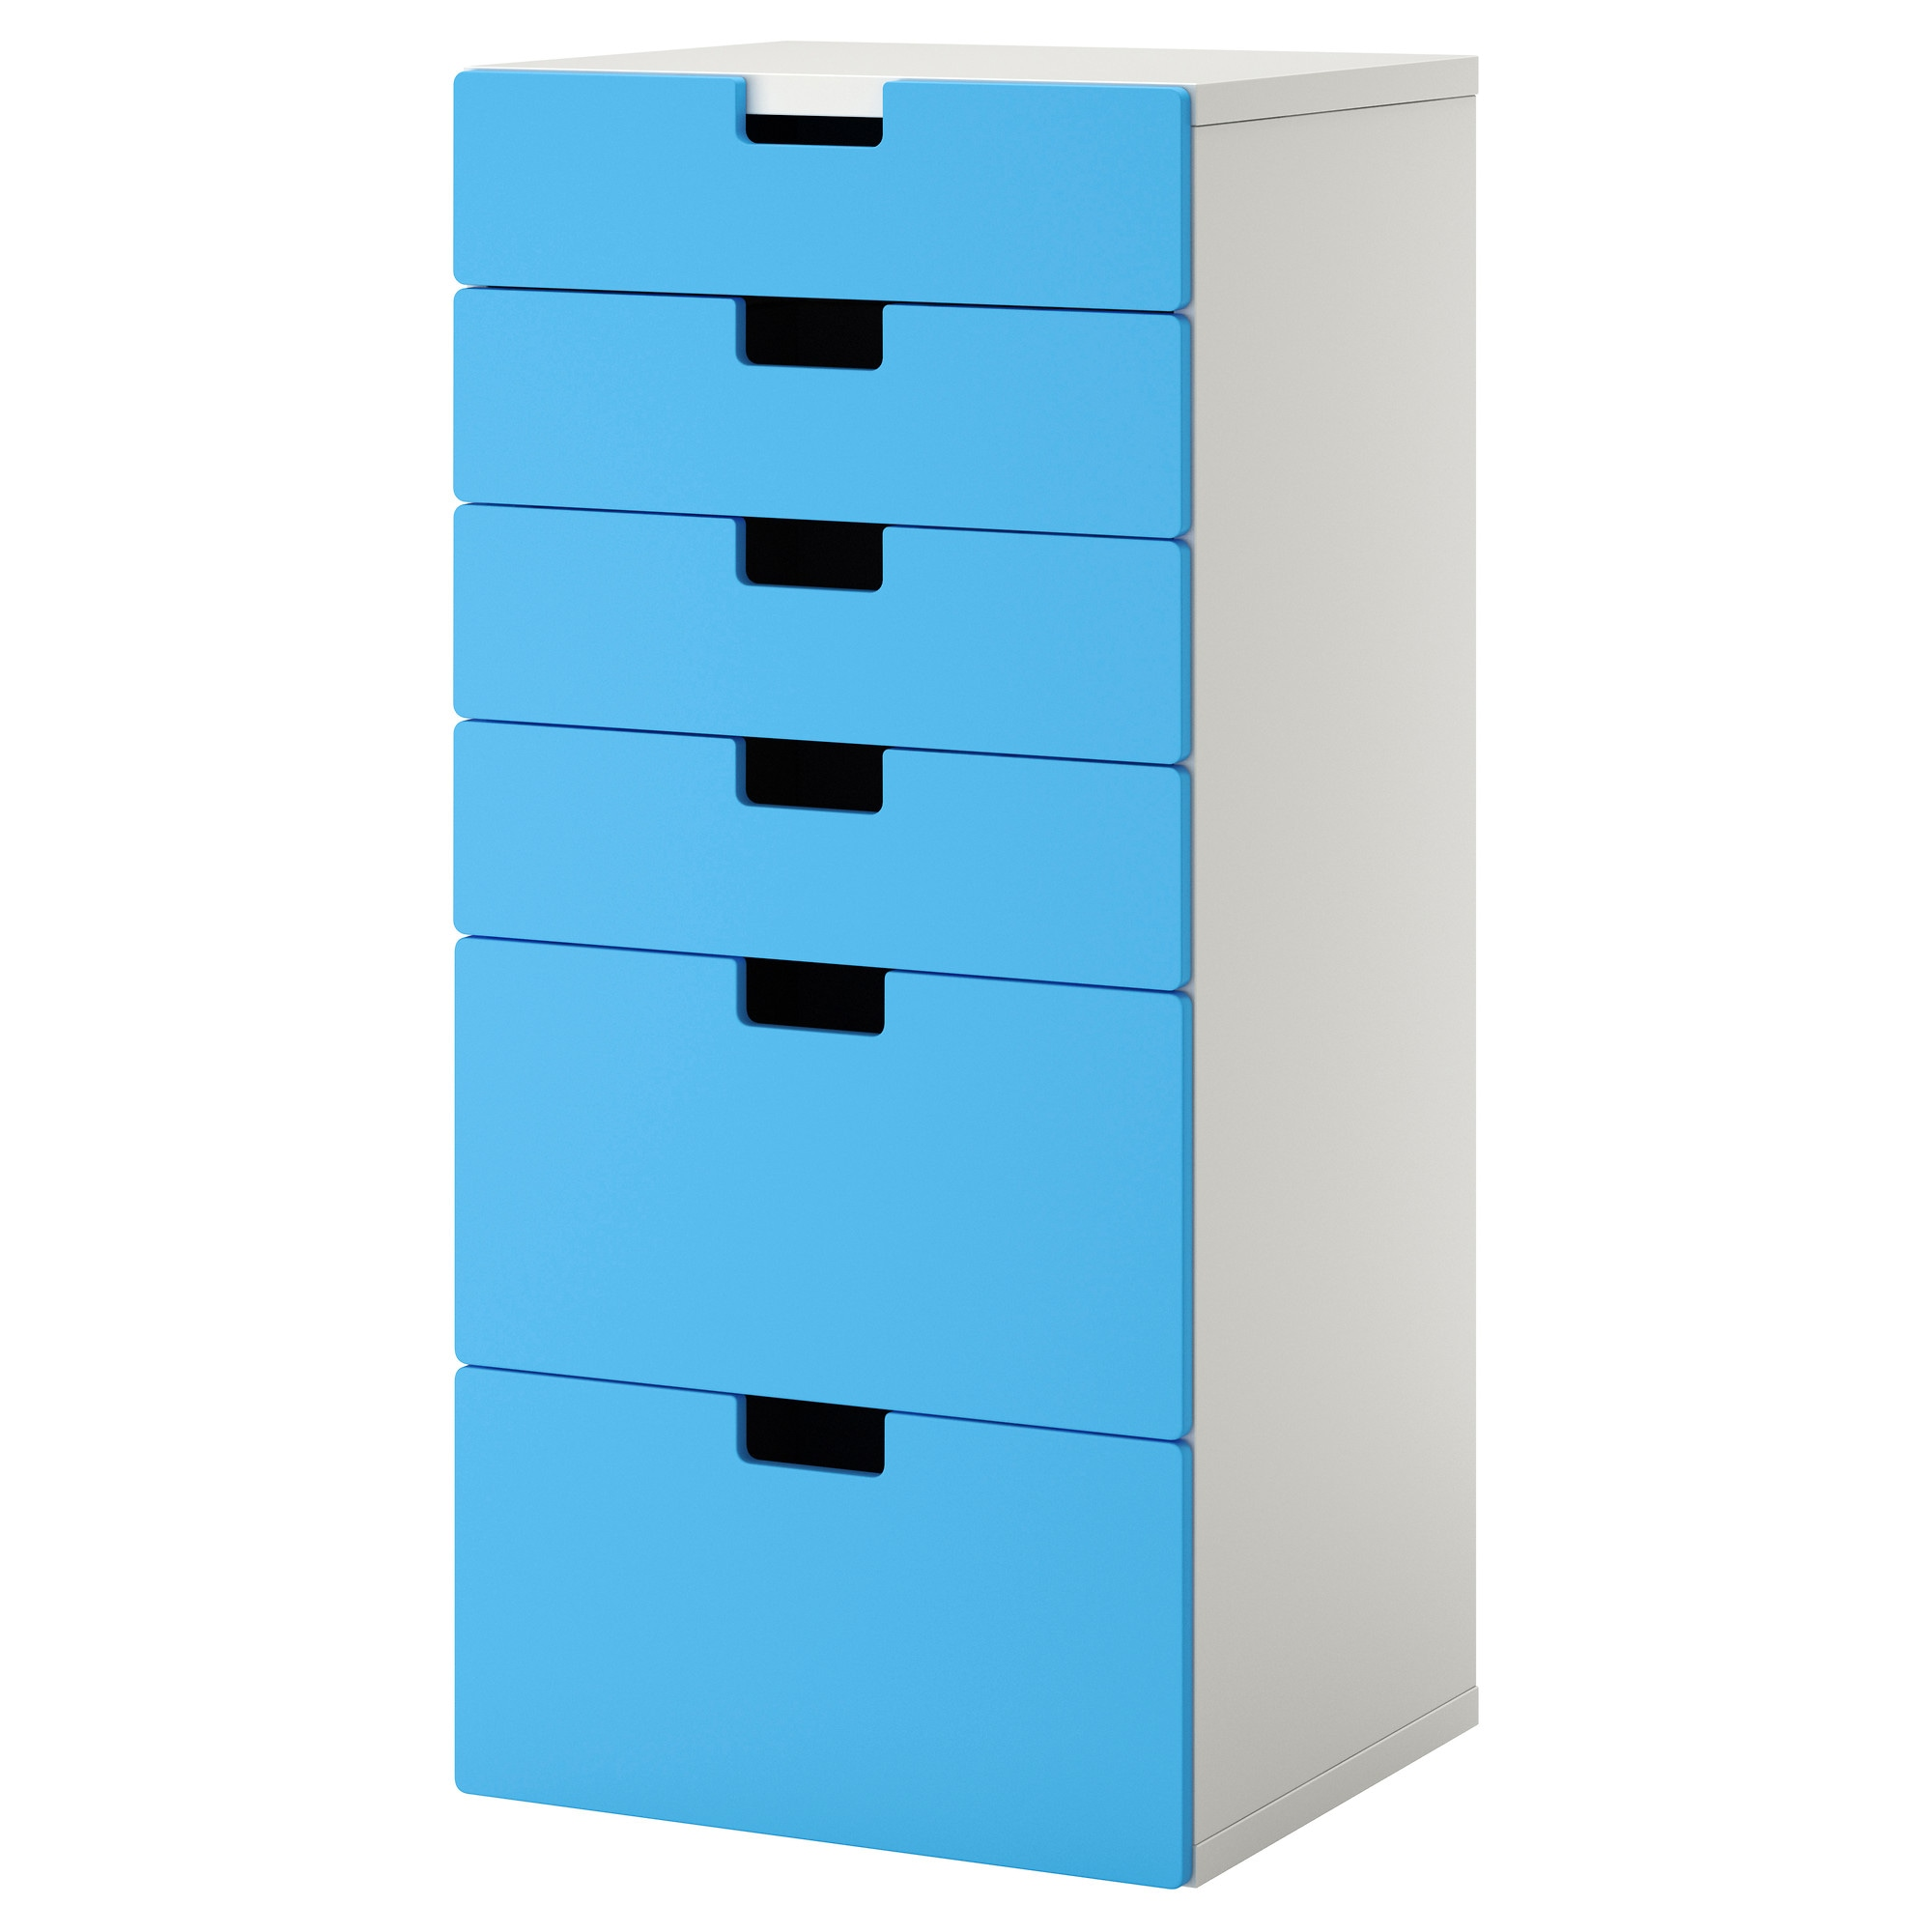 Delightful STUVA Storage Combination With Drawers   White/black   IKEA